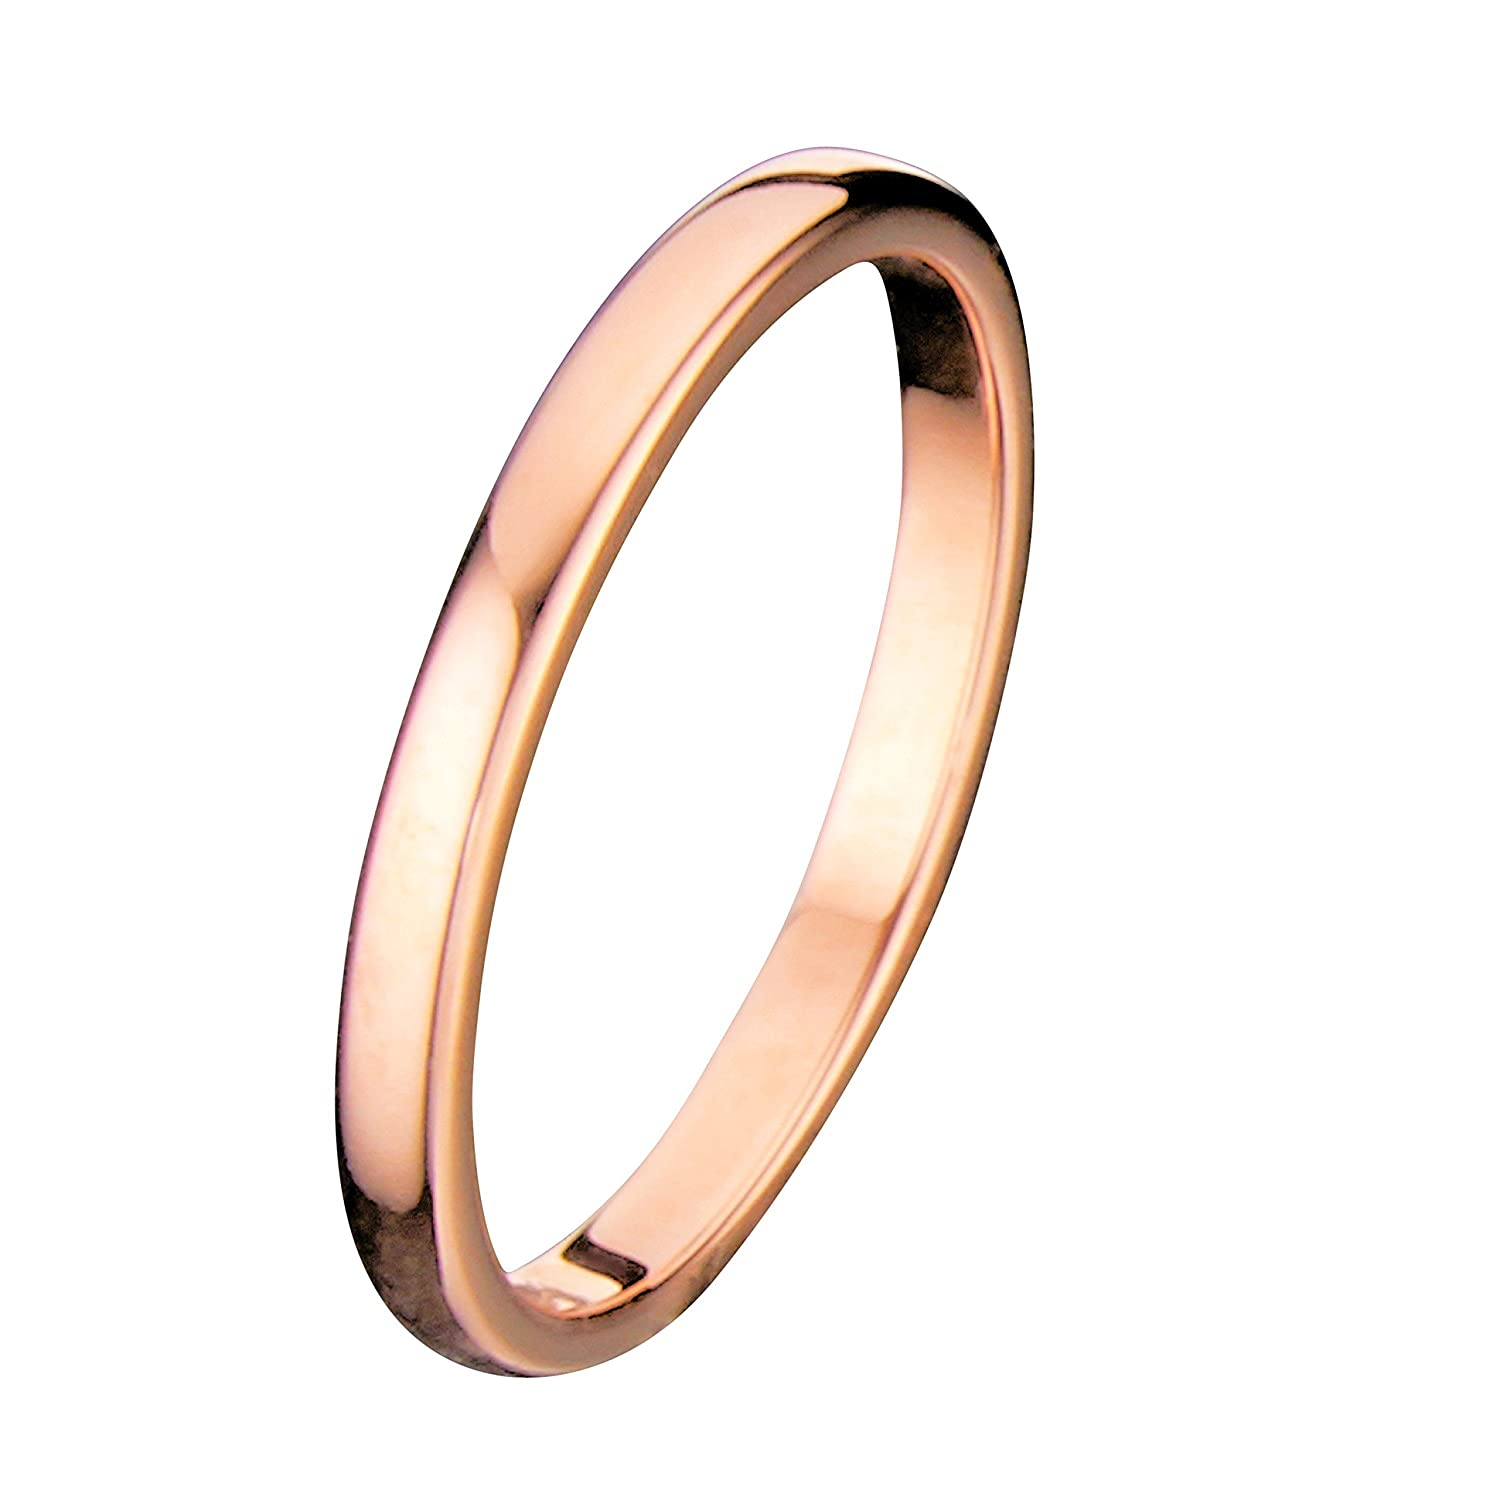 fullxfull and white men thin hers simple tree women ring rose textured listing gold bark il his s carat band bands wedding